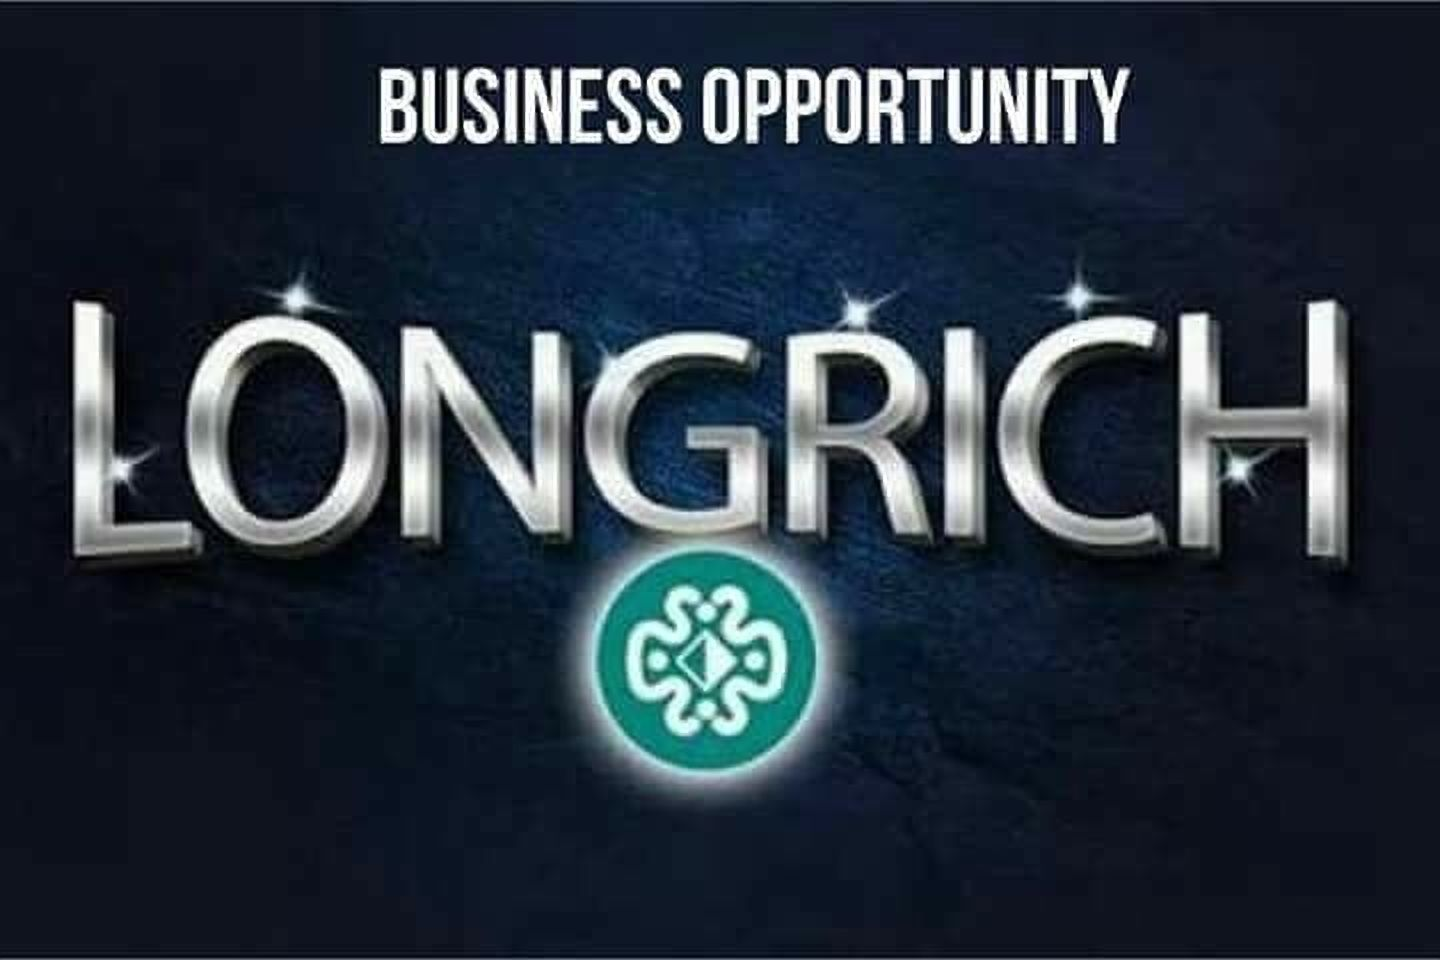 Longrich Nigeria-Business Opportunity-Star Director-1